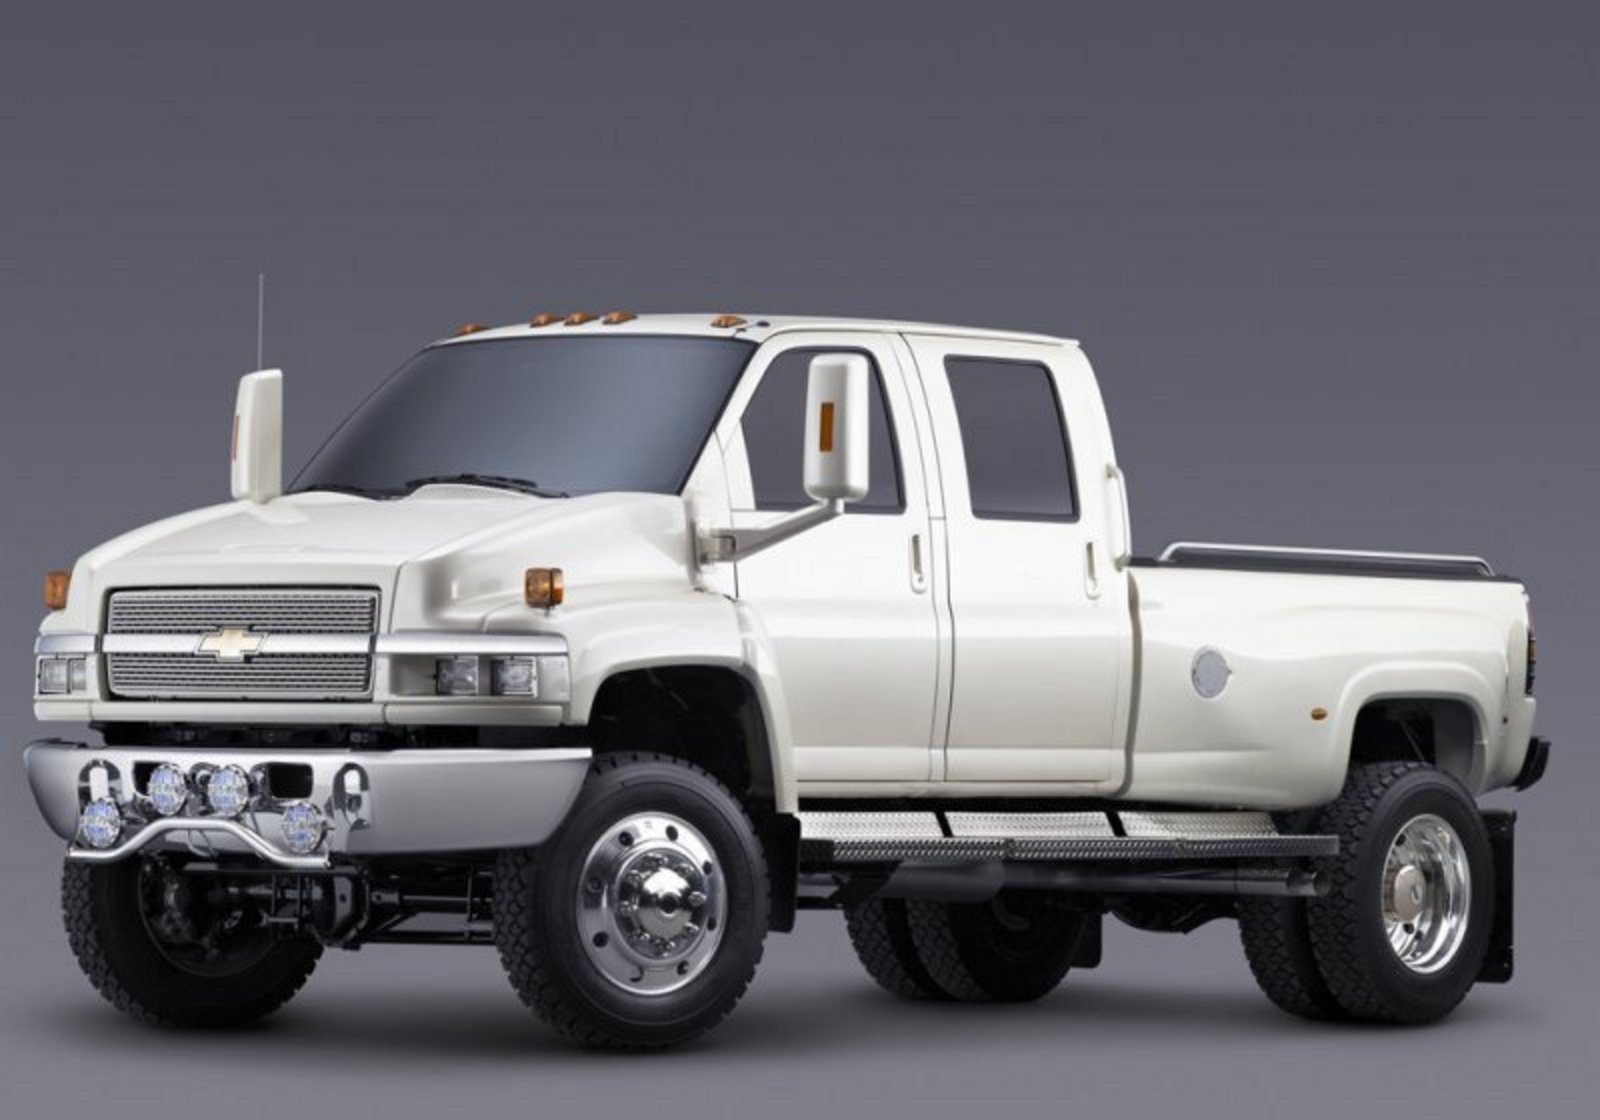 All Chevy chevy c5500 specs : 2003 - 2009 Chevrolet Kodiak Review - Top Speed